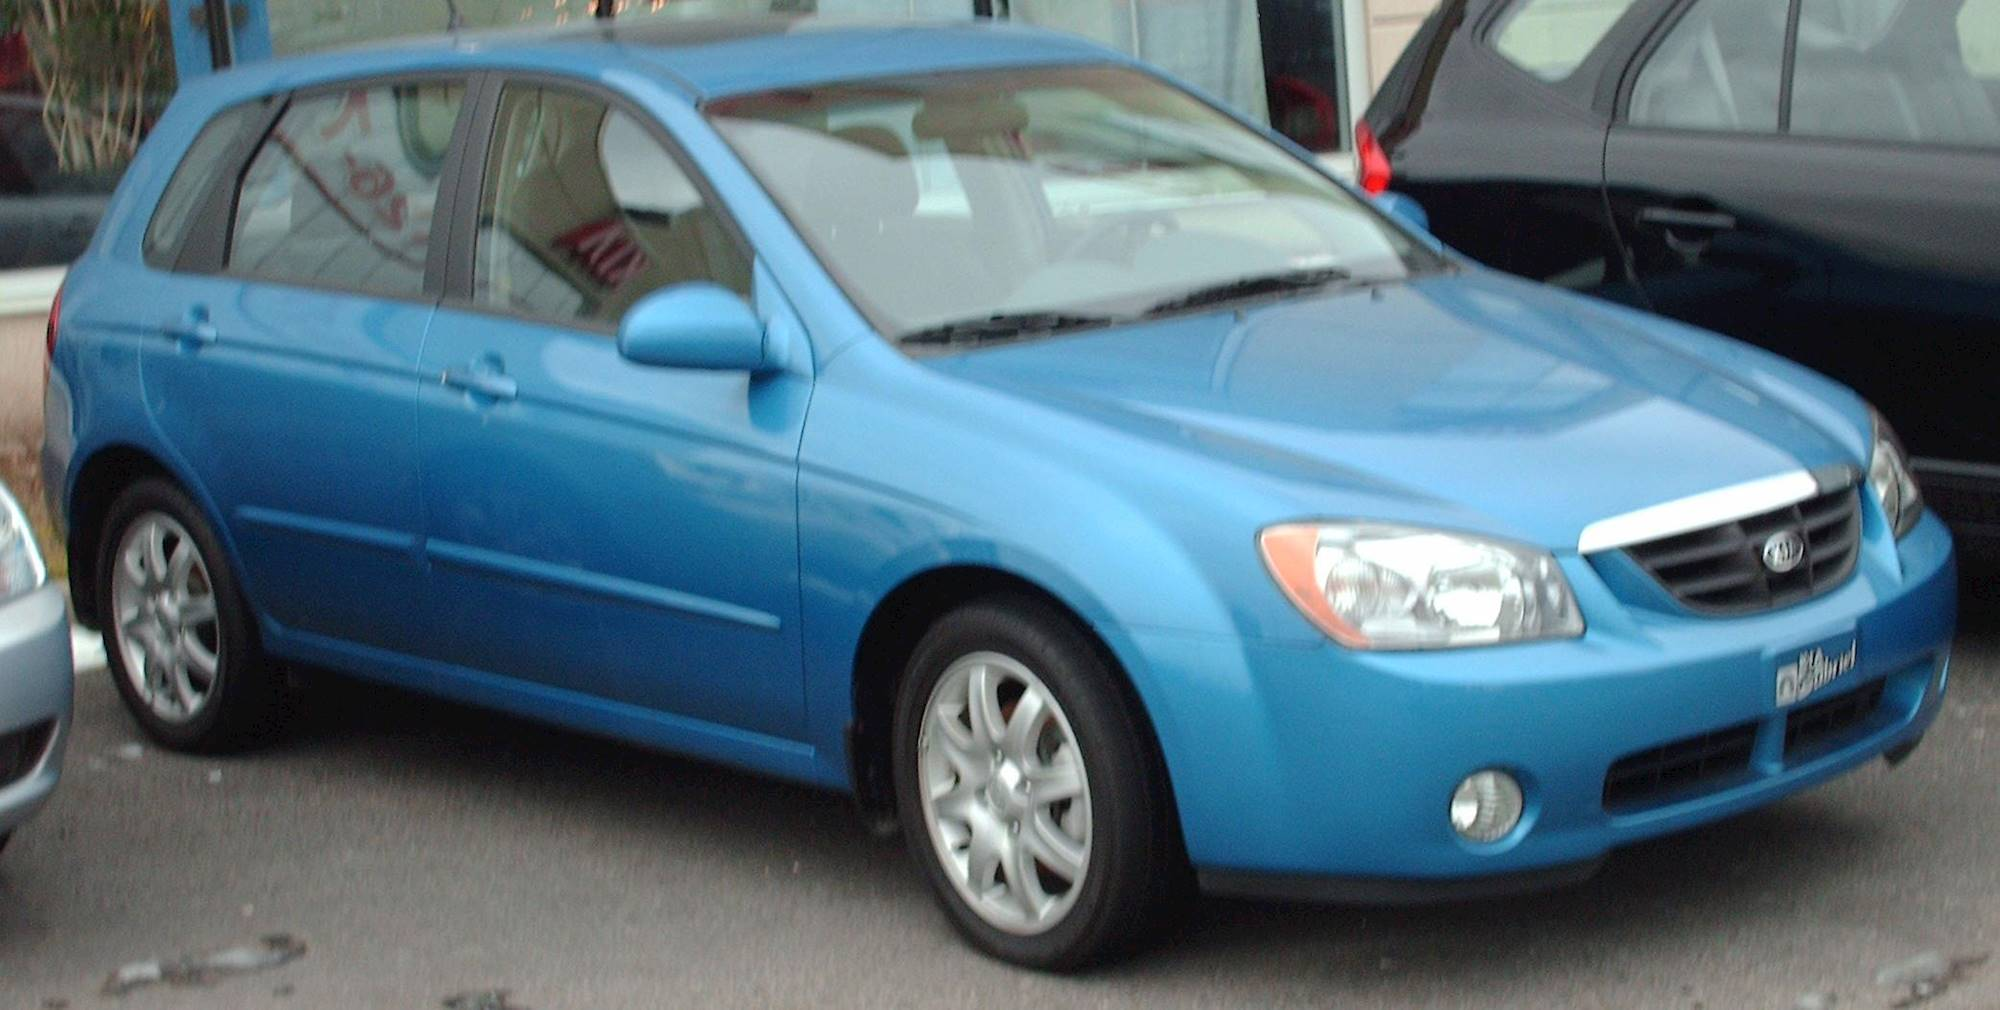 2005 Kia Spectra 5 Door Hb Automatic